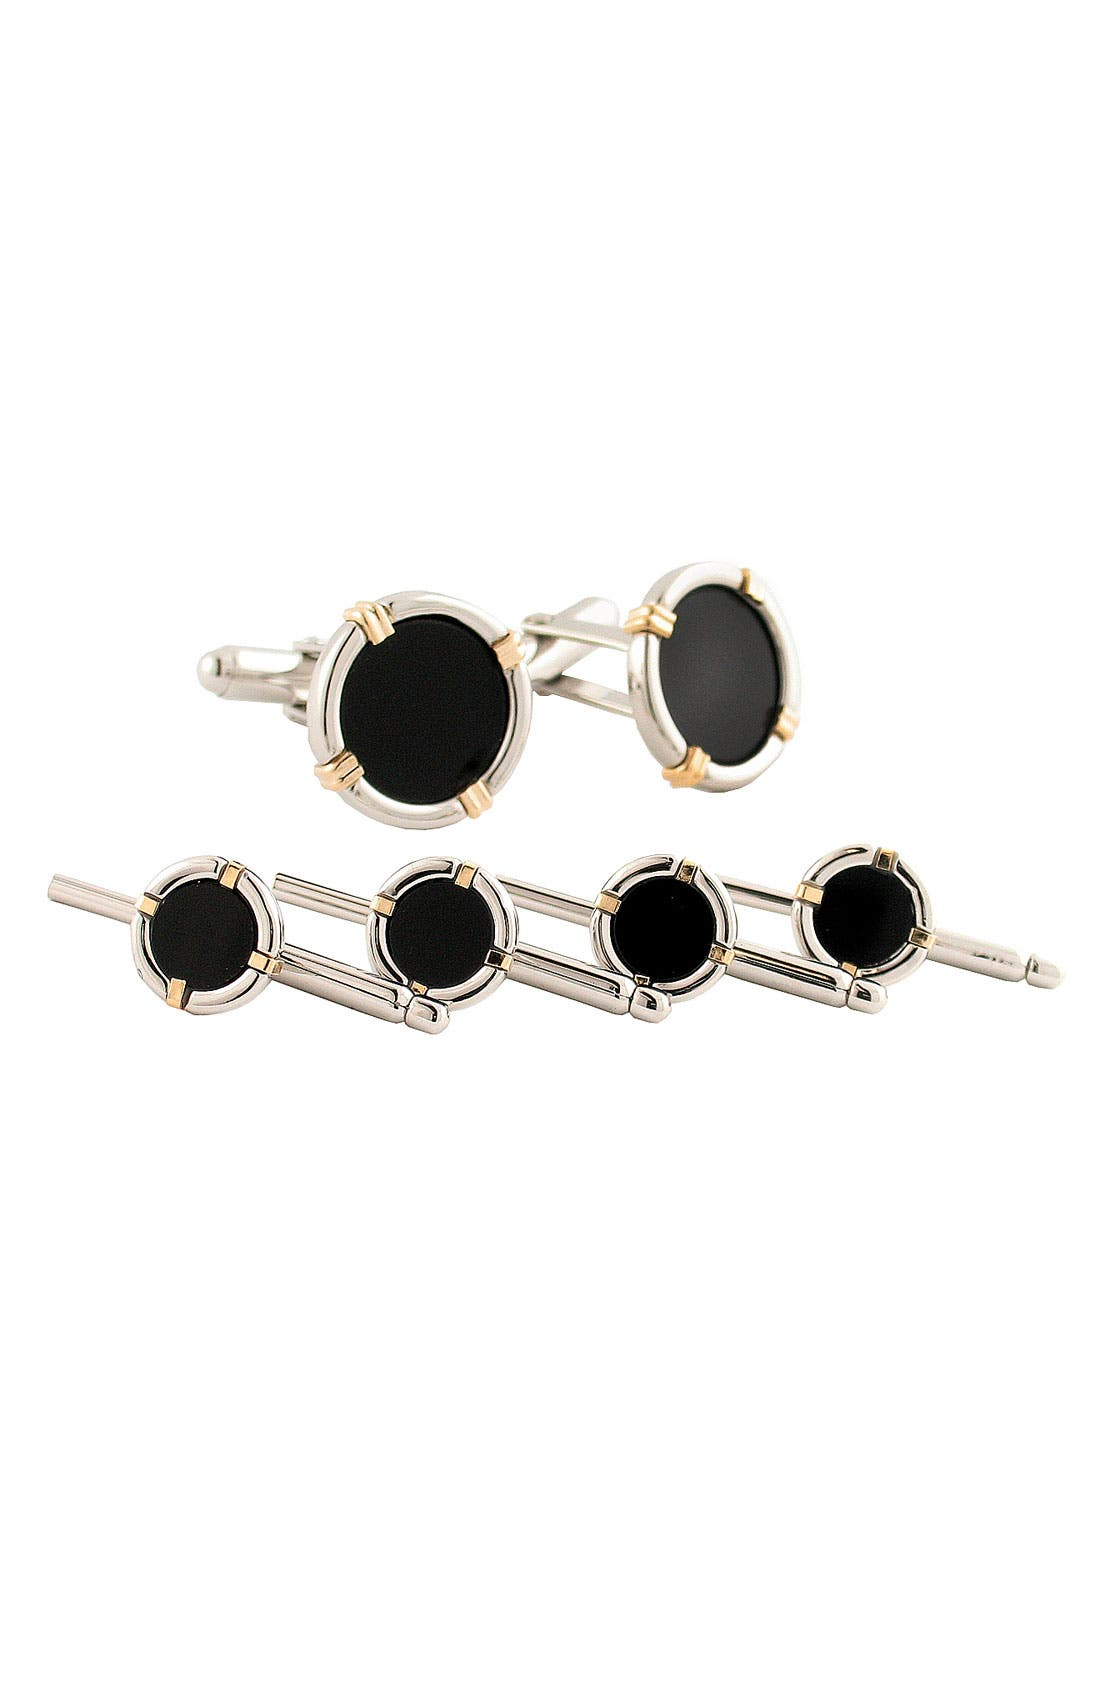 Inlaid Sterling Silver Cuff Link & Stud Set,                         Main,                         color, Silver/ Gold/ Wire Onyx